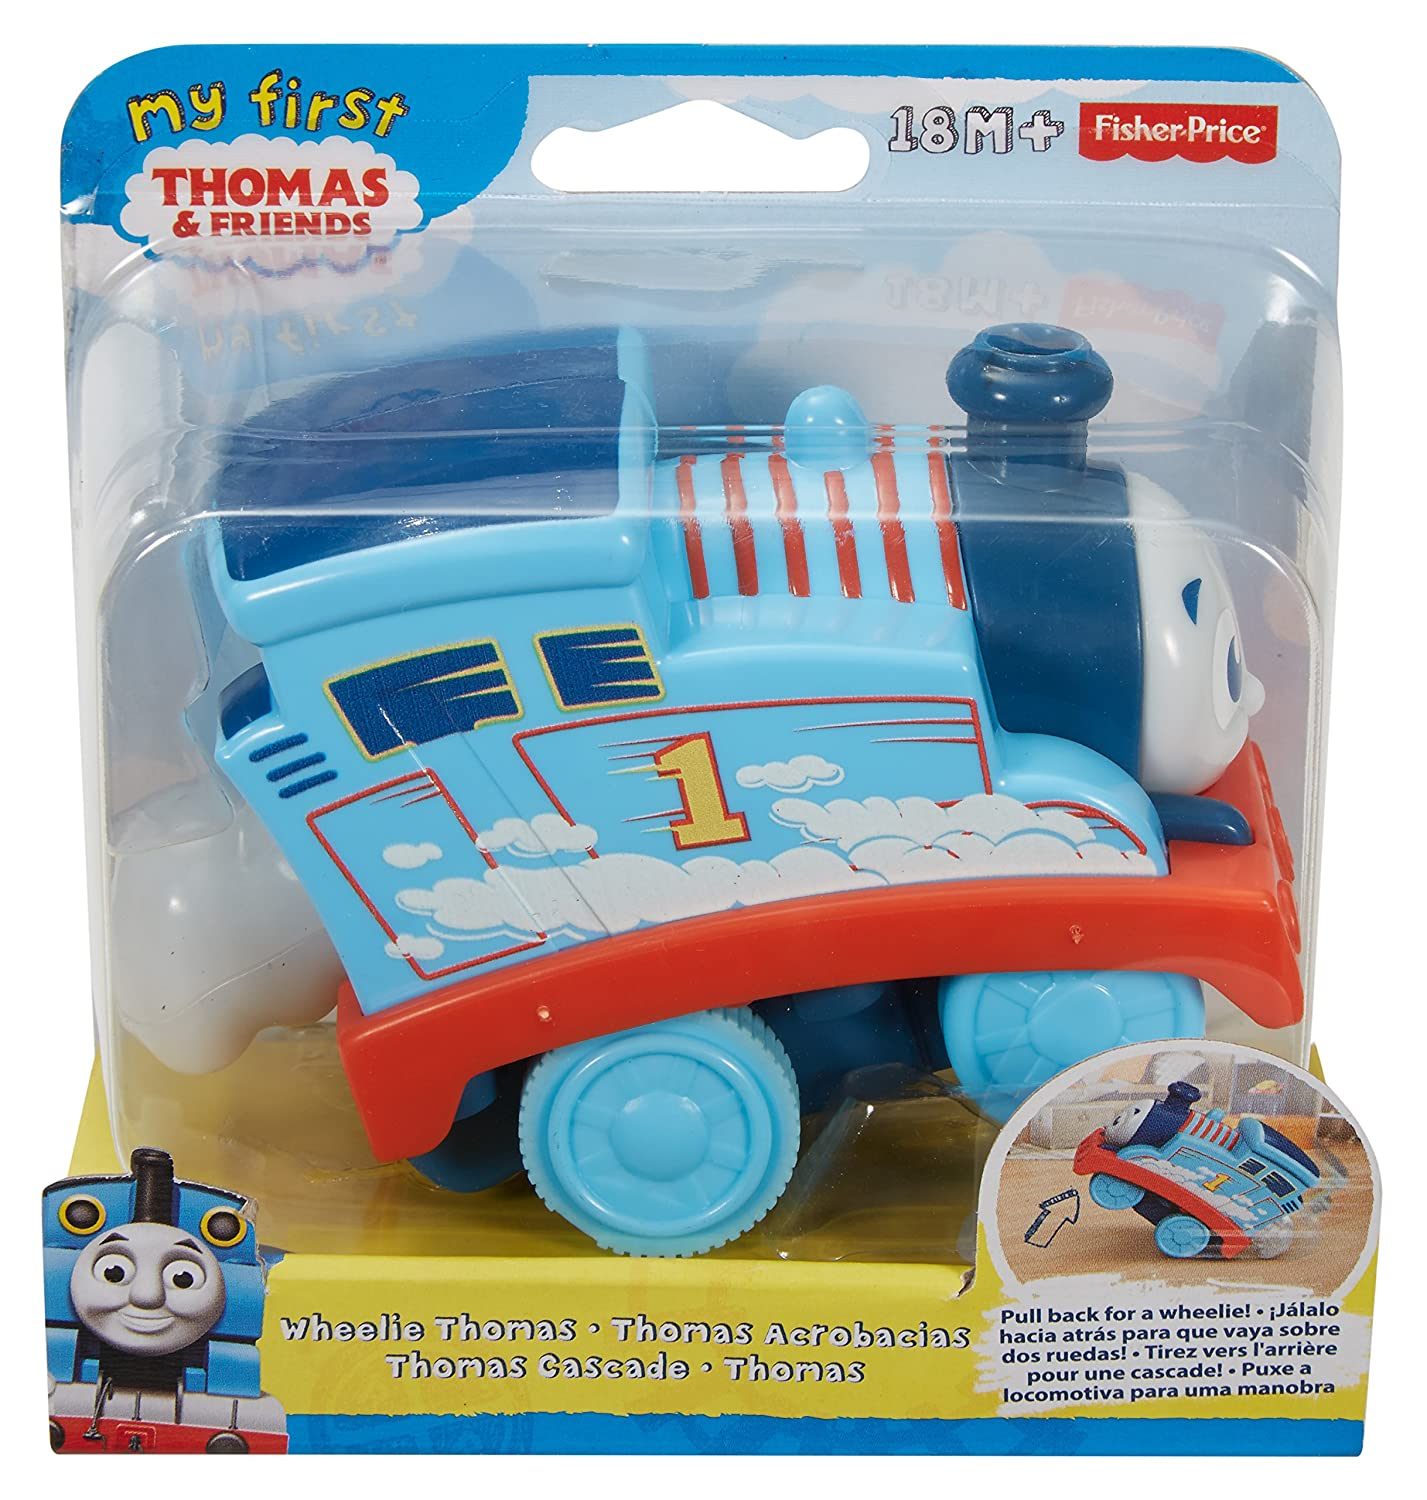 Amazon.com: Thomas & Friends Fisher-Price My First, Wheelie Thomas: Toys & Games